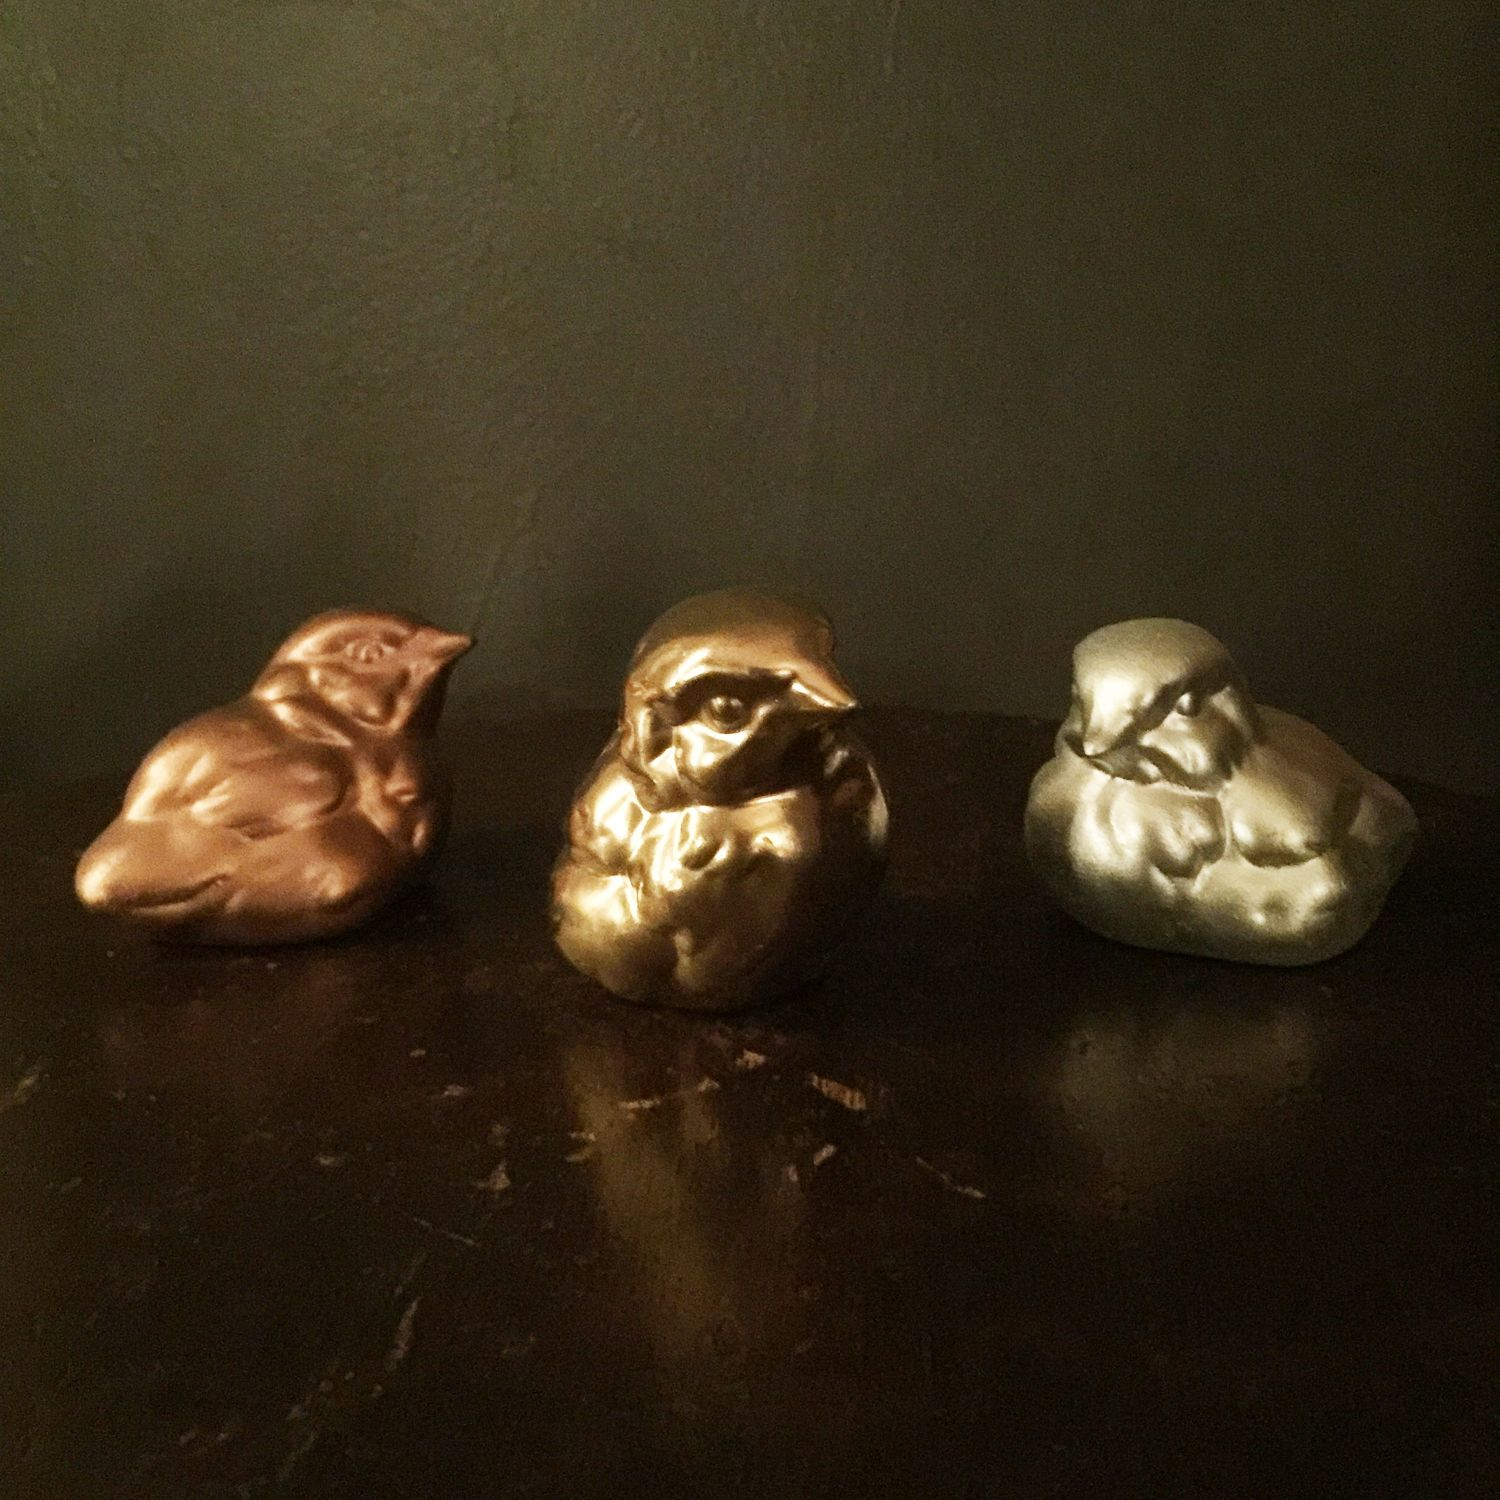 "Bird Figurines - Painted with Montana Black Spray Paint in Gold, Copper and Silver Chrome 2 1/2"" x 2 1/2"" - One of a Kind Set"